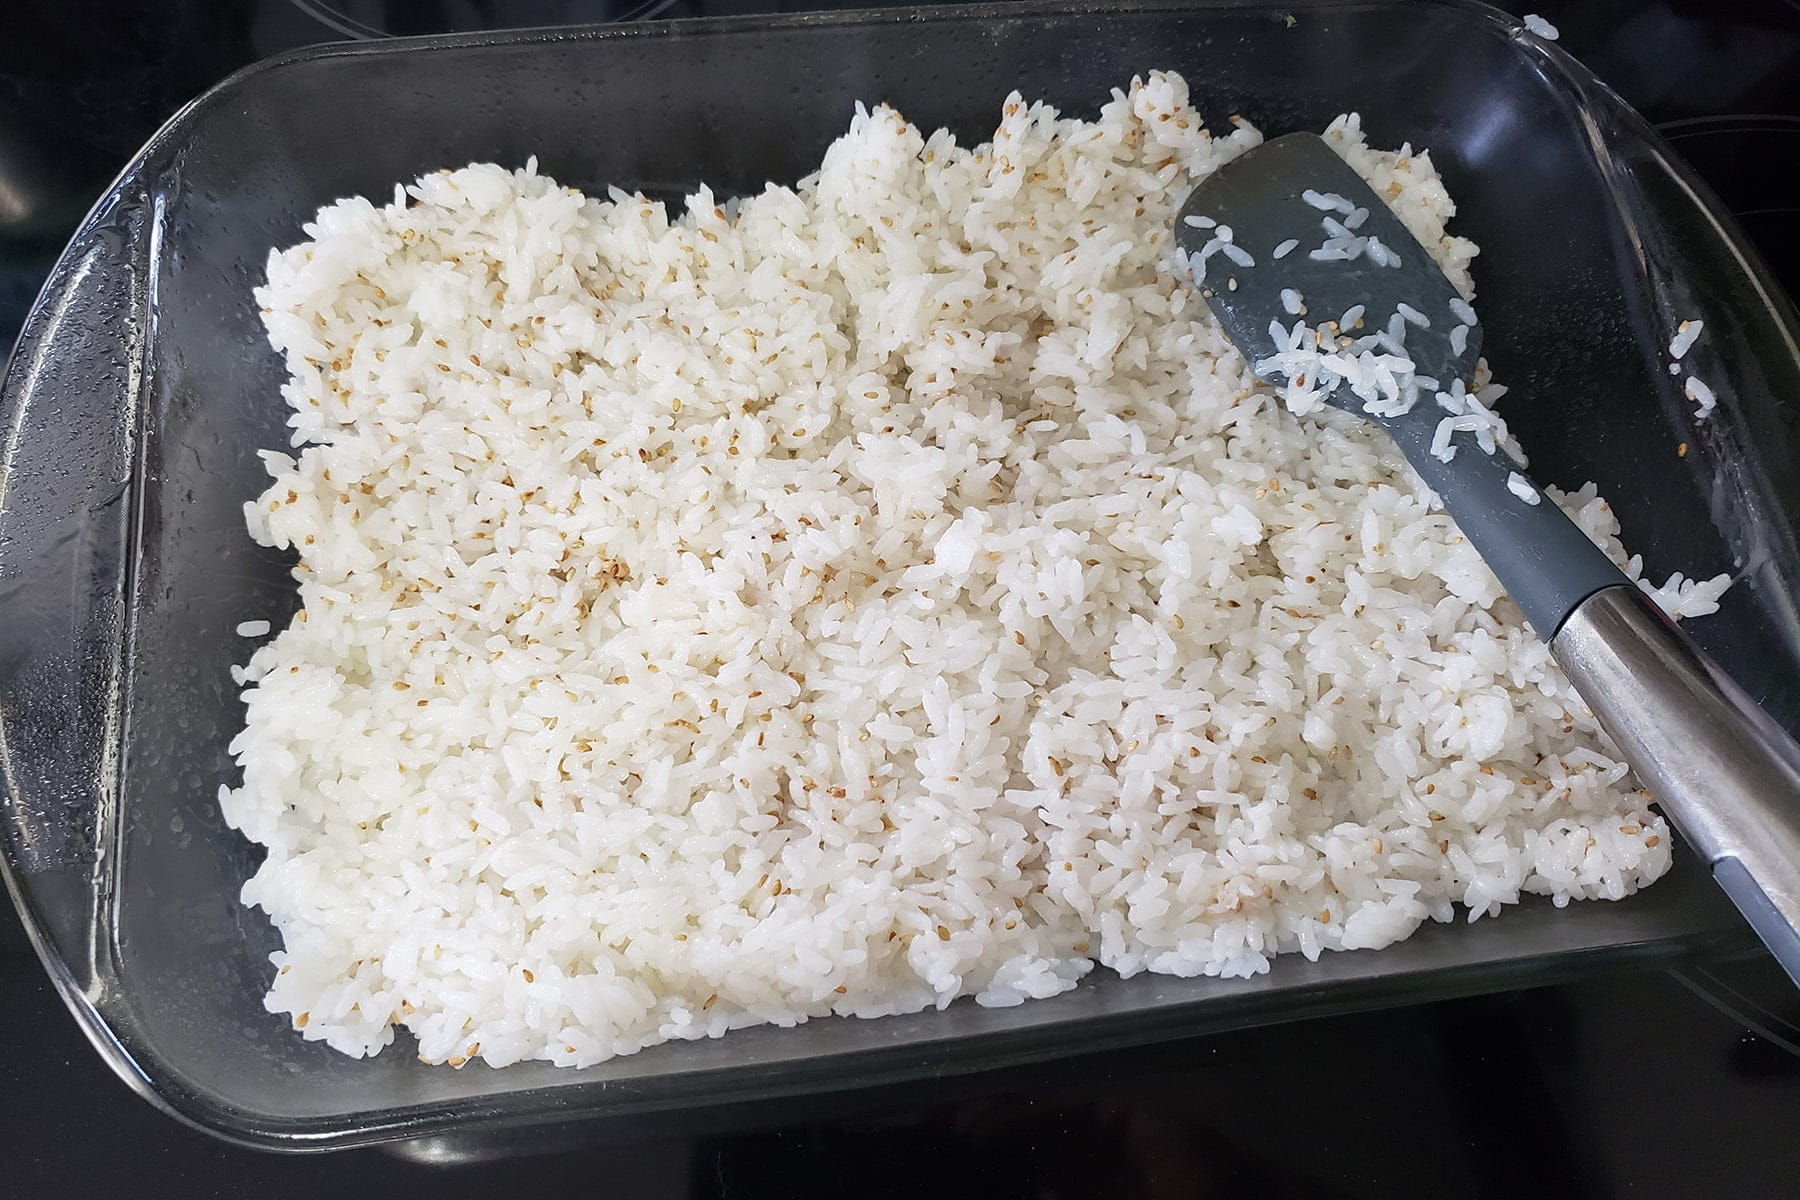 Sushi rice is being spread in a greased casserole dish.